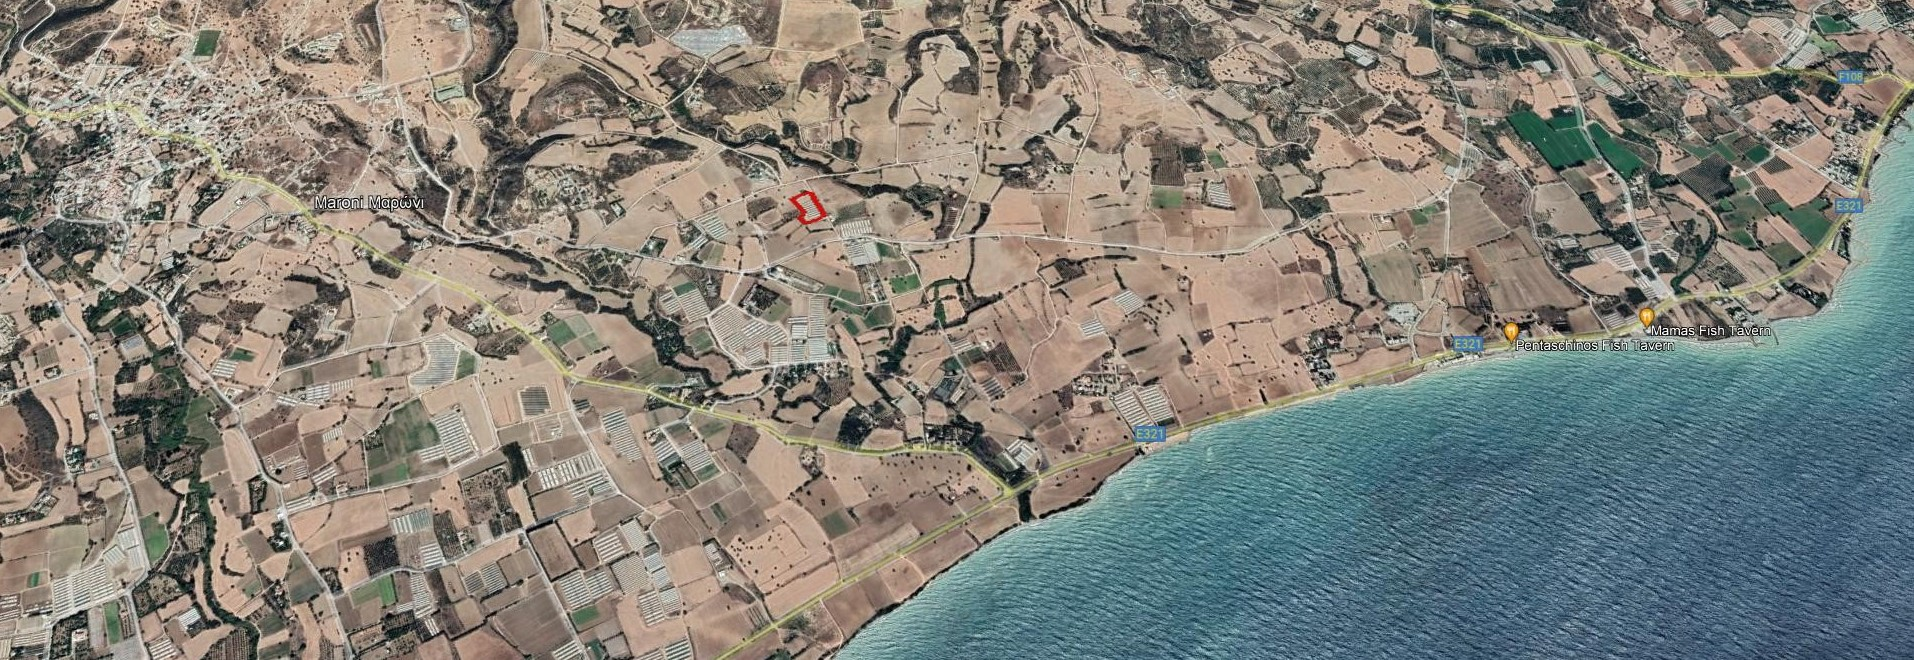 Agricultural Plot 1.3km From the SEA